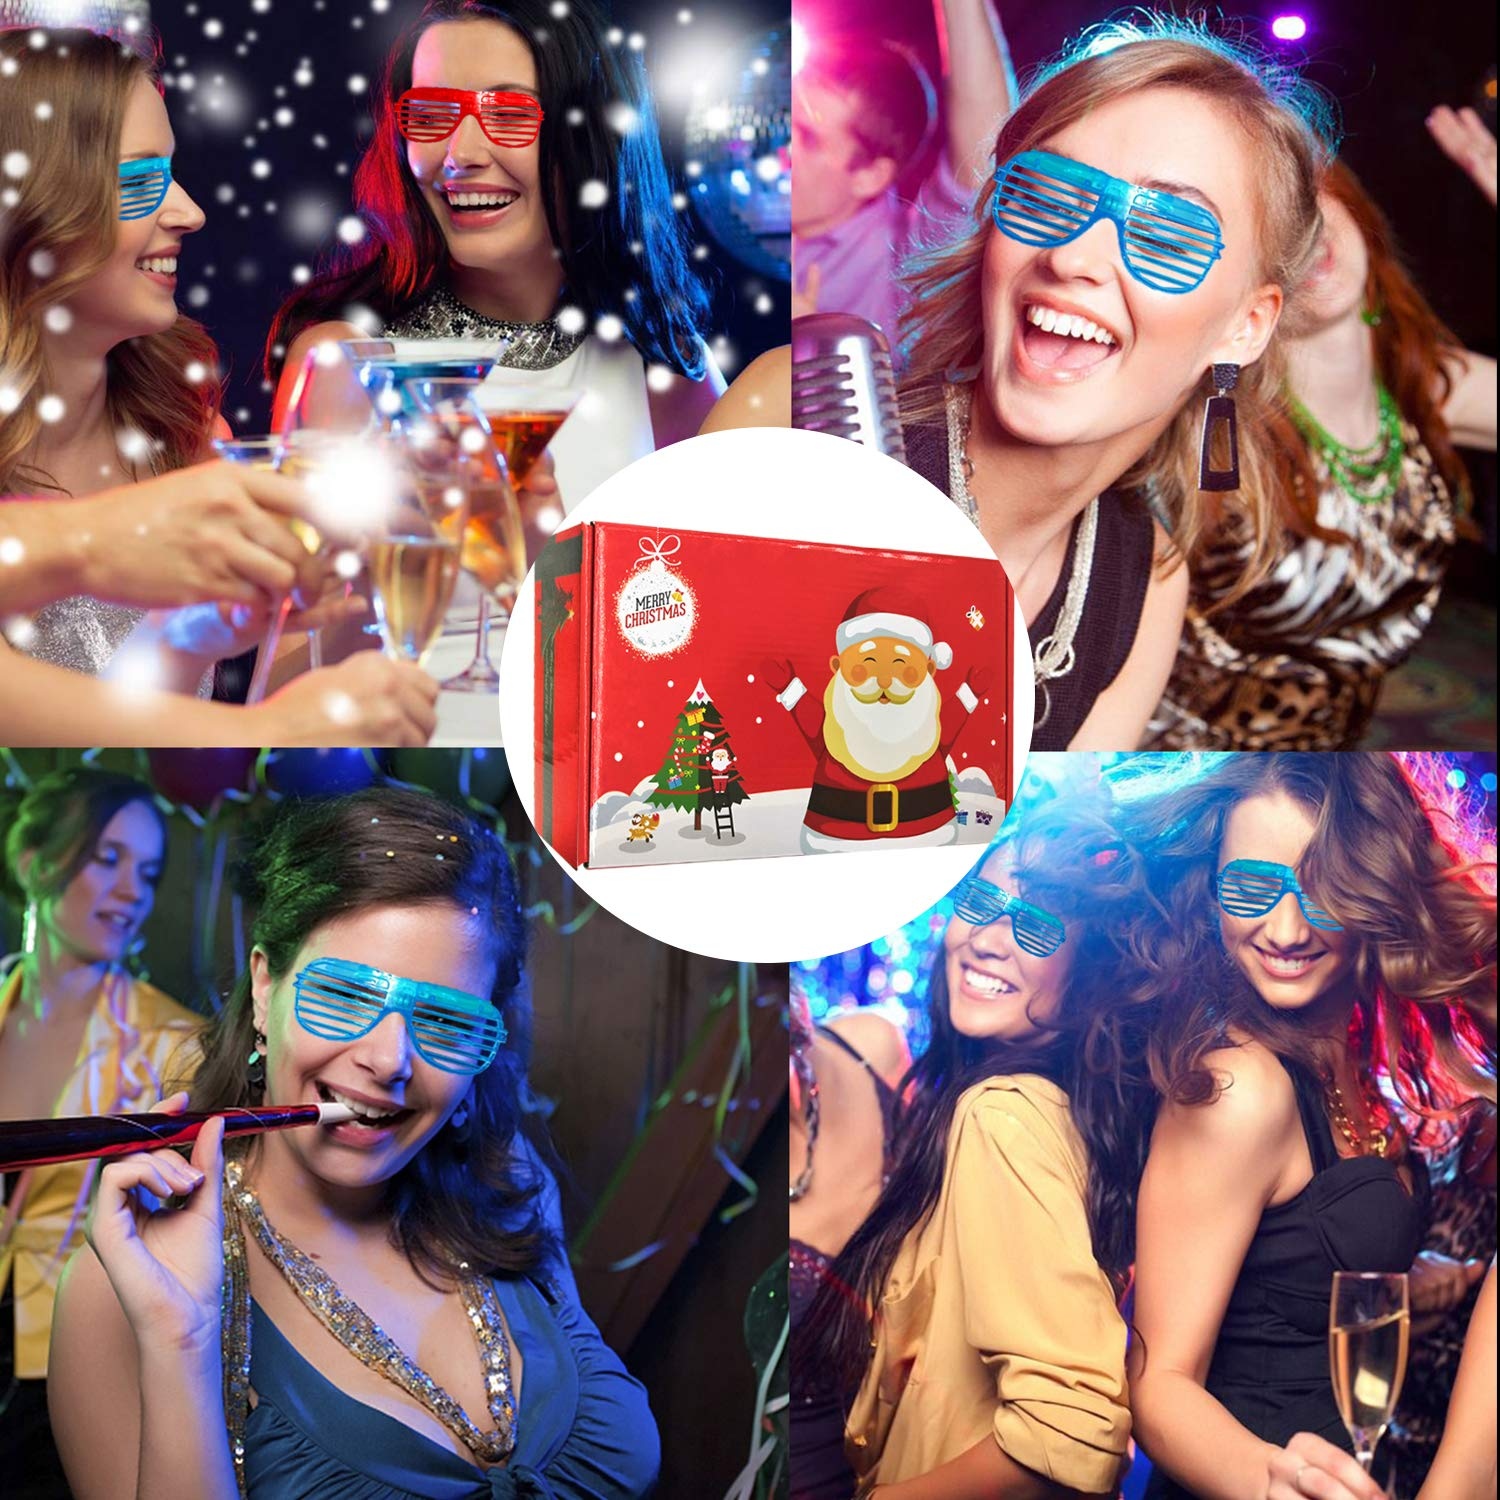 20 Pack Party Favors LED Light Up Glasses Glow in The Dark Party Supplies Toys Flashing Glasses Neon Shutter DJ SunGlasses Parties Decorations Holiday Birthday Gifts for Adult Kids by CHARMCZ (Image #6)